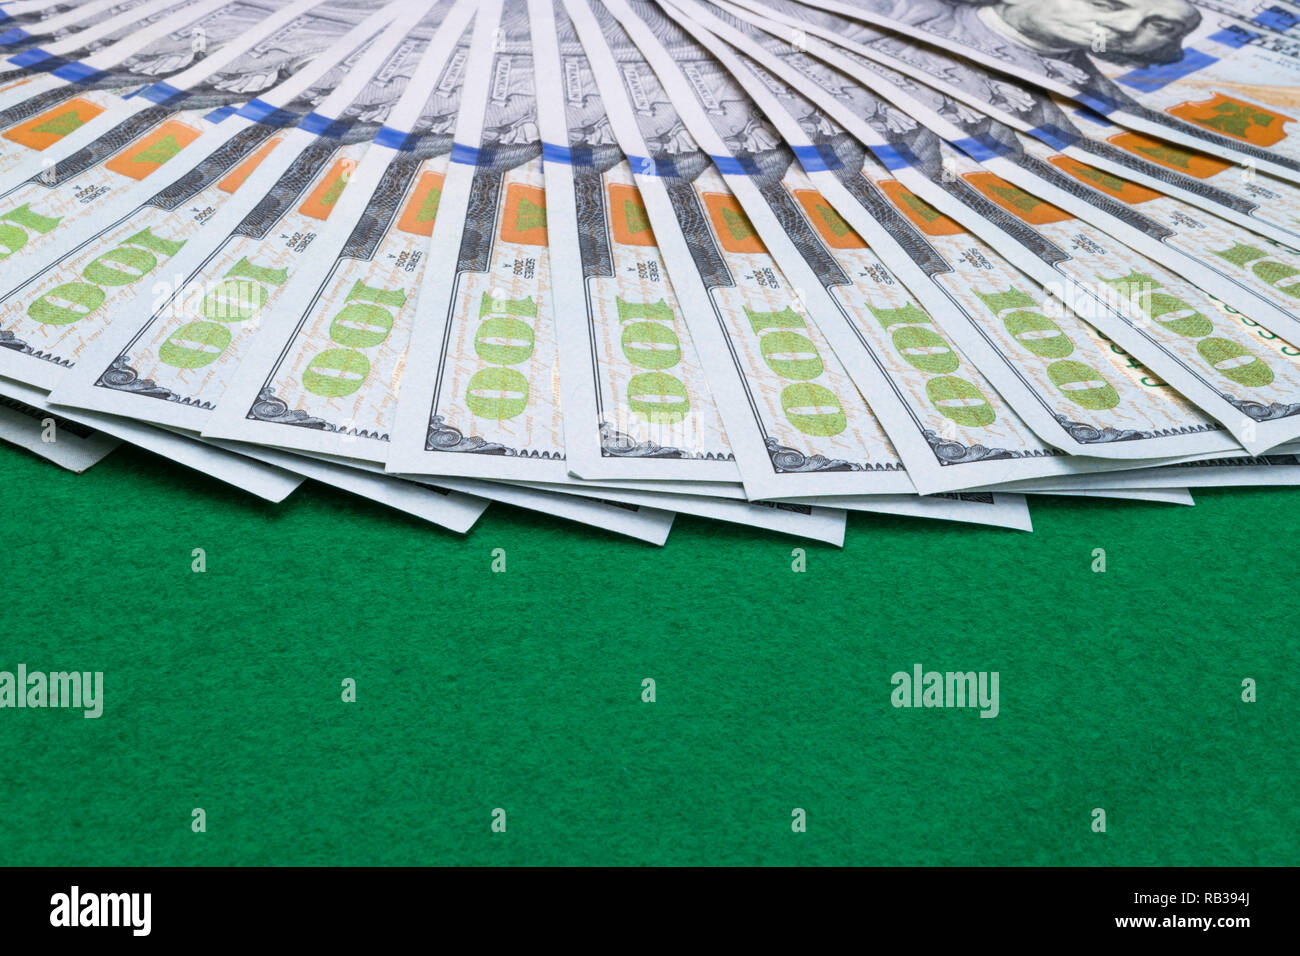 Stack of one hundred dollar bills. Stack of cash money in hundred dollar banknotes. Heap of hundred dollar bills on green poker table. Game concept - Stock Image